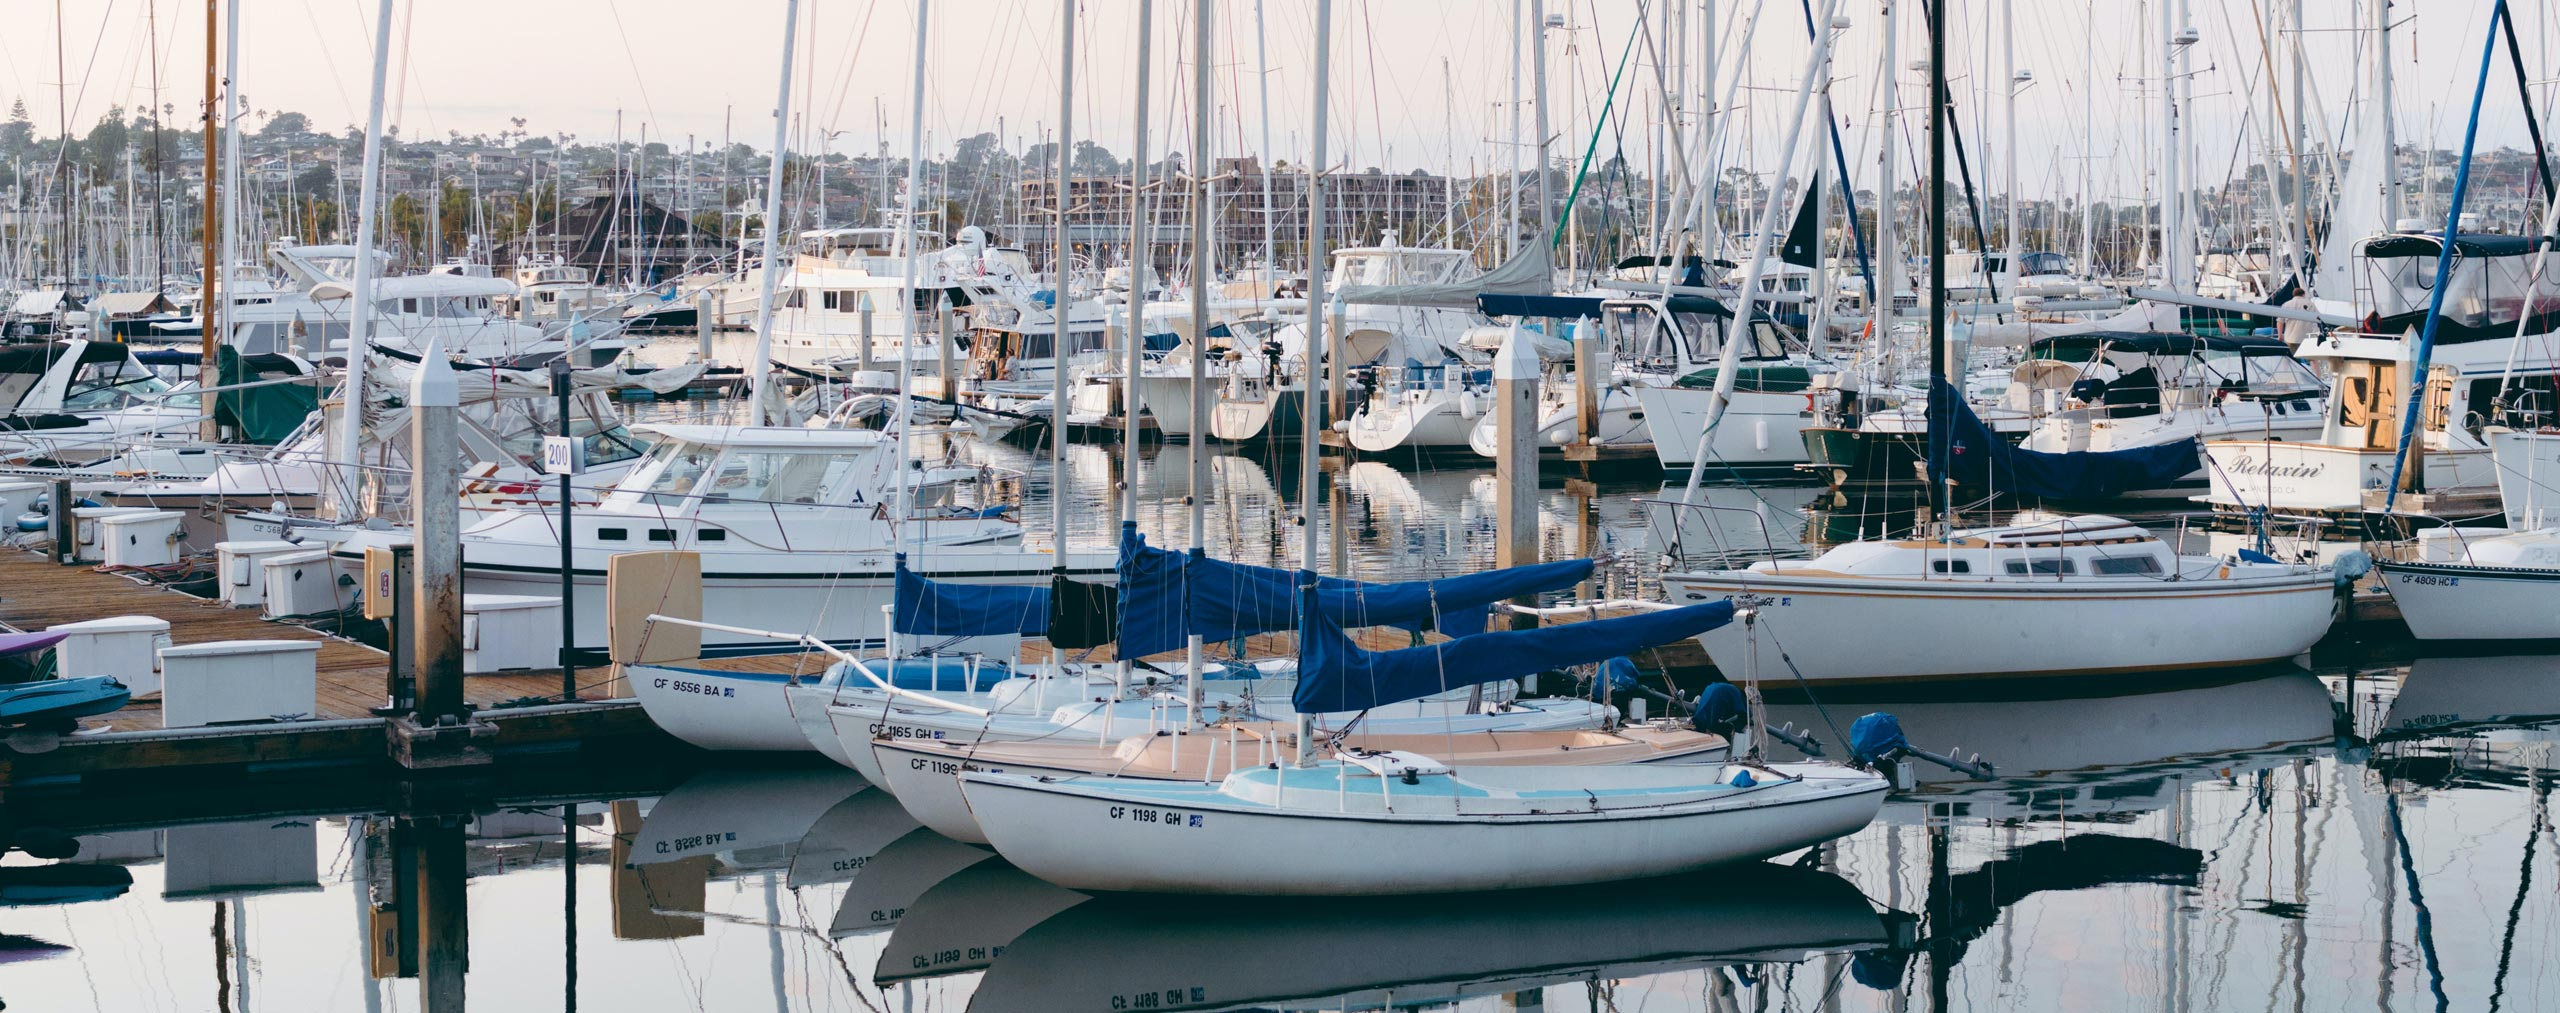 Yachts and boats moored